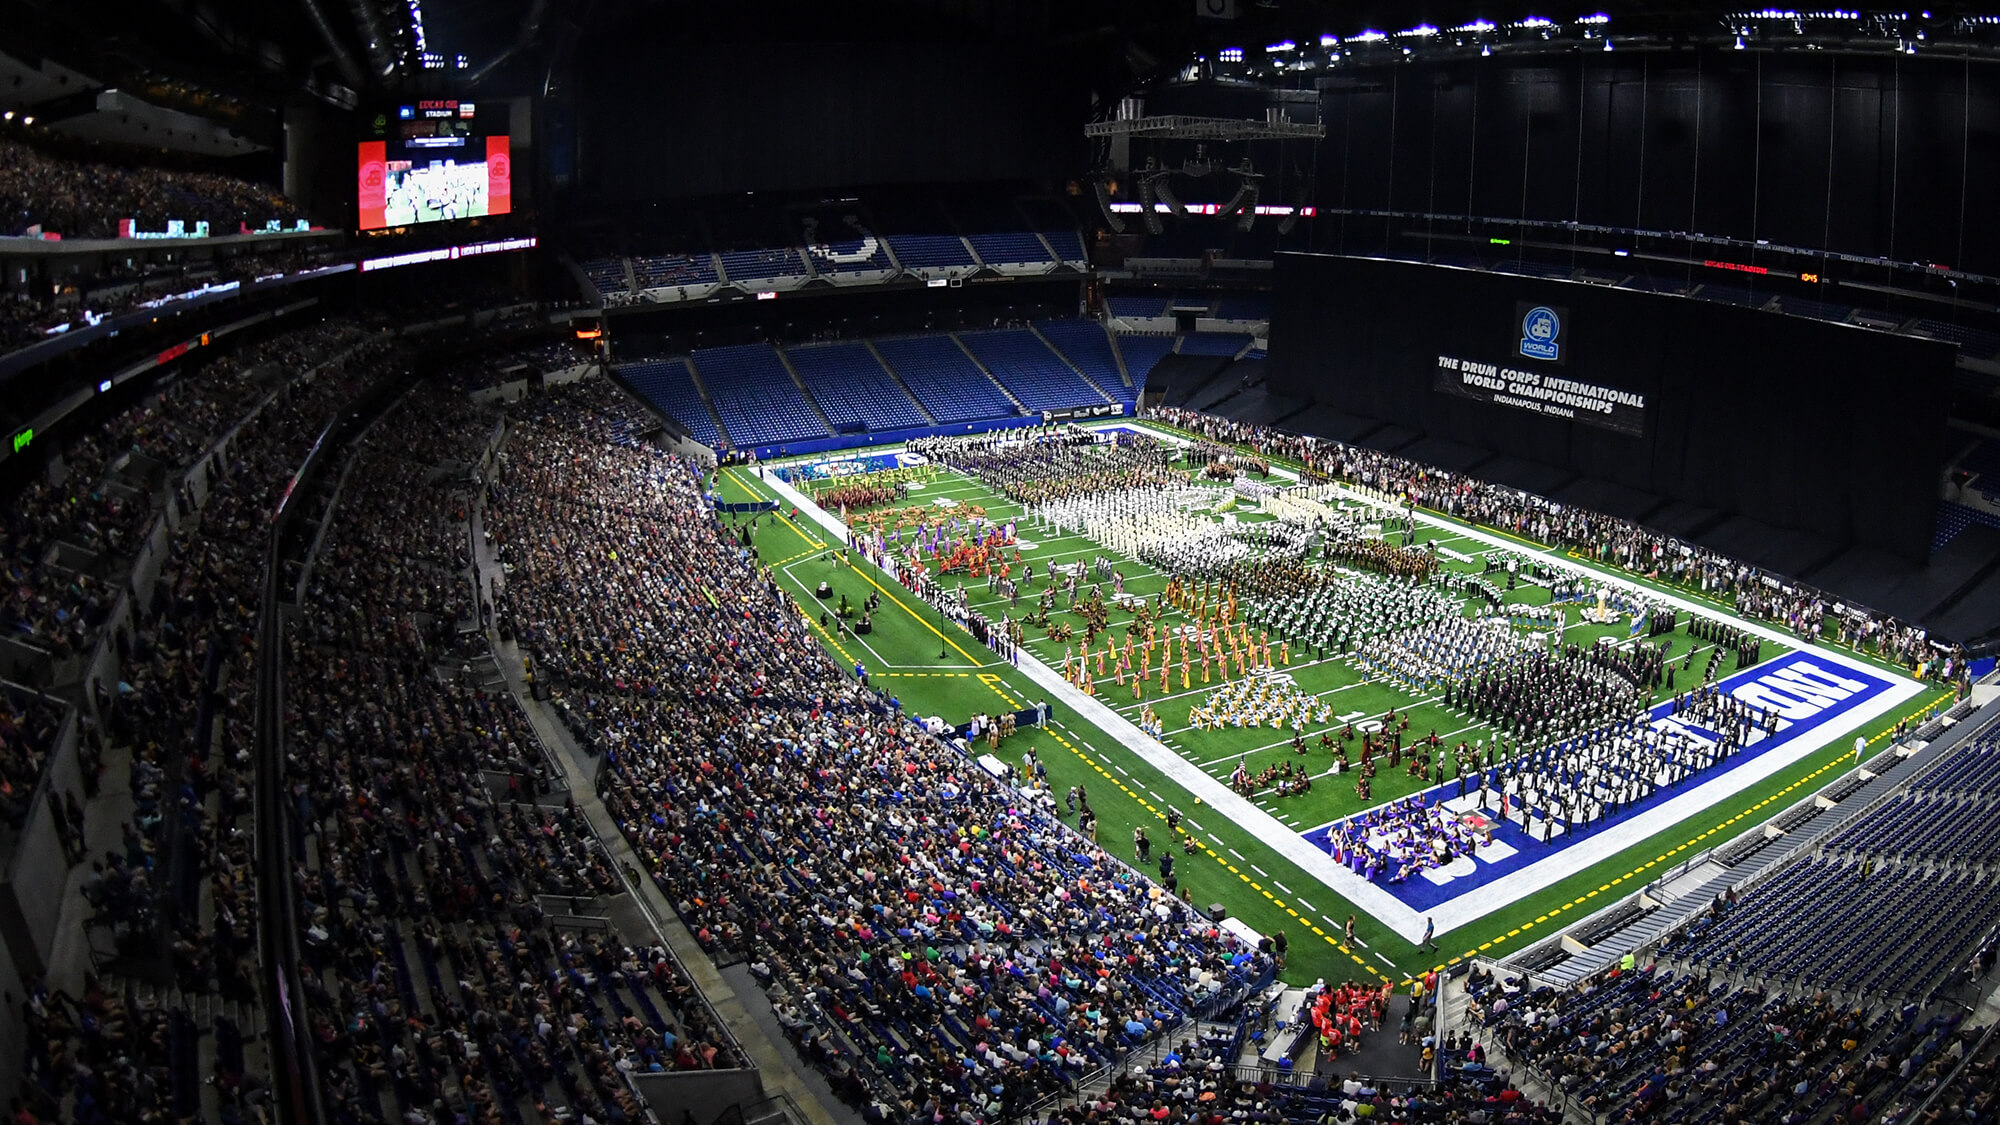 Looking back: #DCI2018 in review